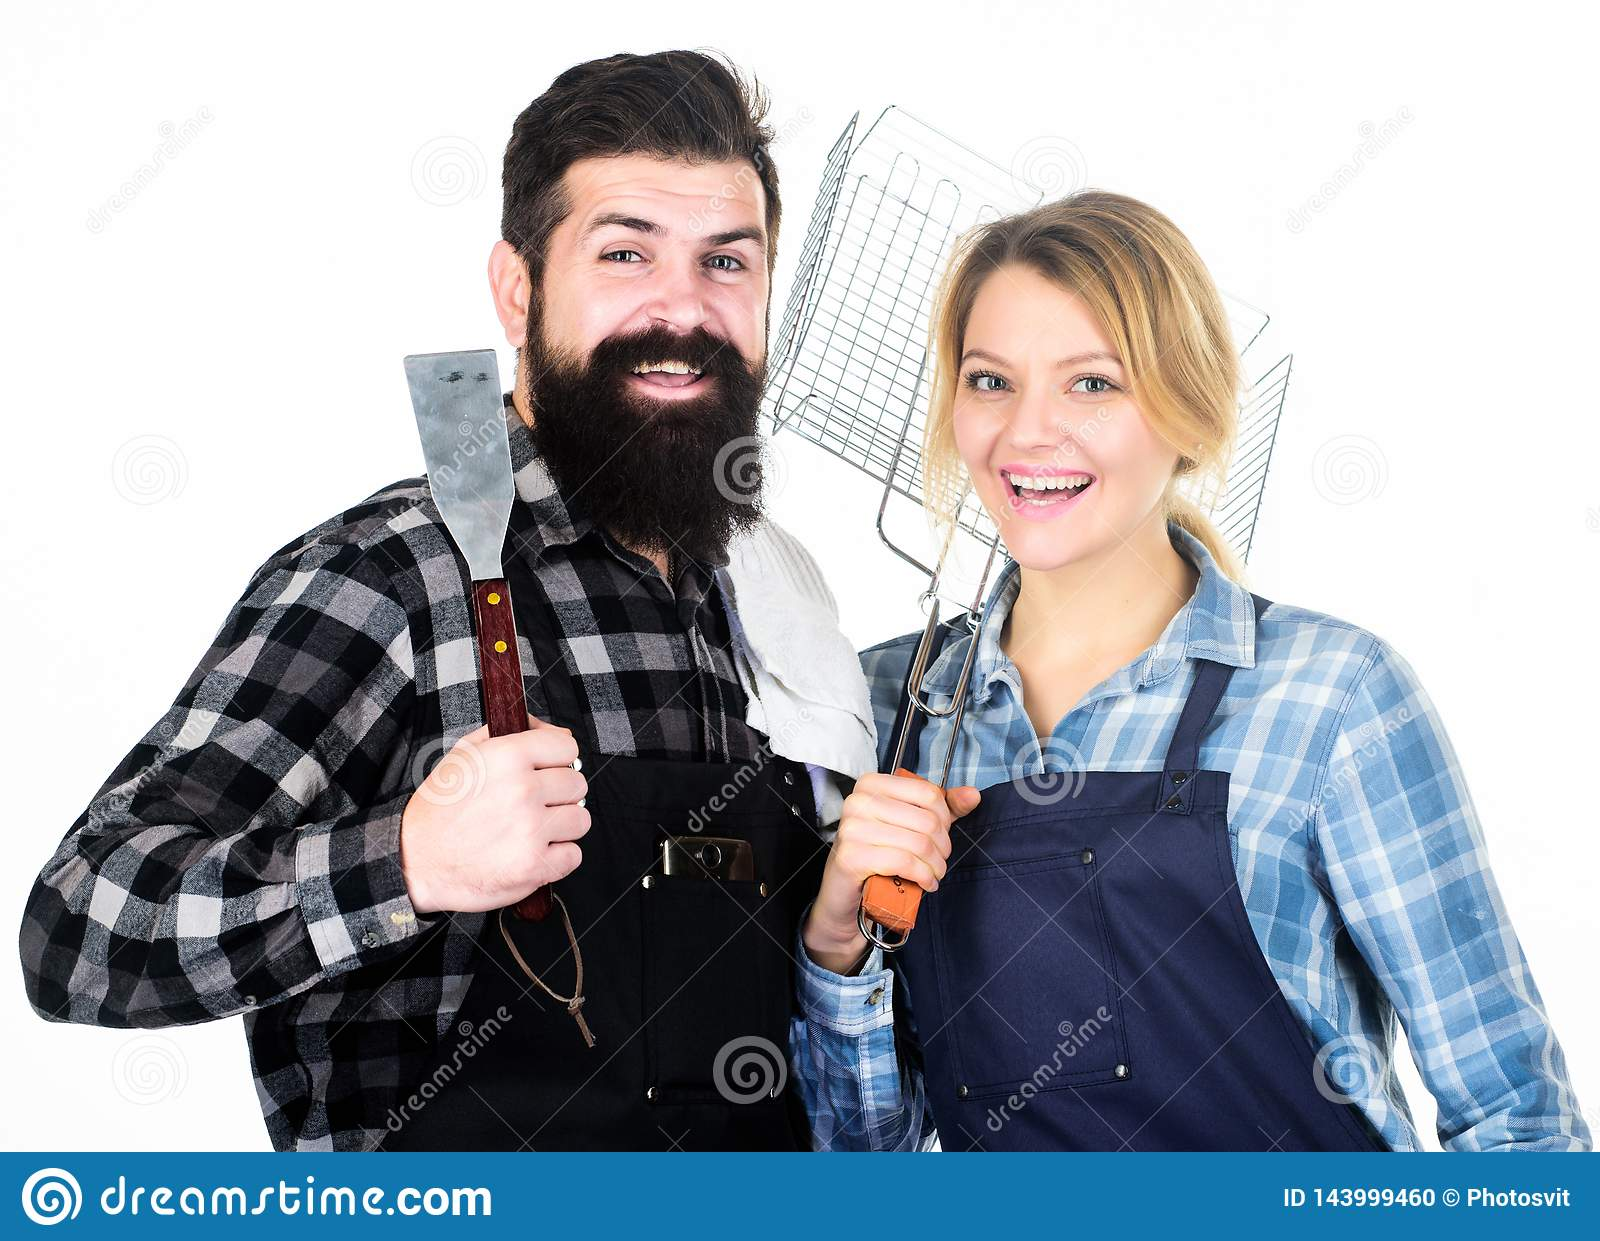 Food preparation. Family weekend. Man bearded hipster and girl. Preparation and culinary. Tools for roasting meat